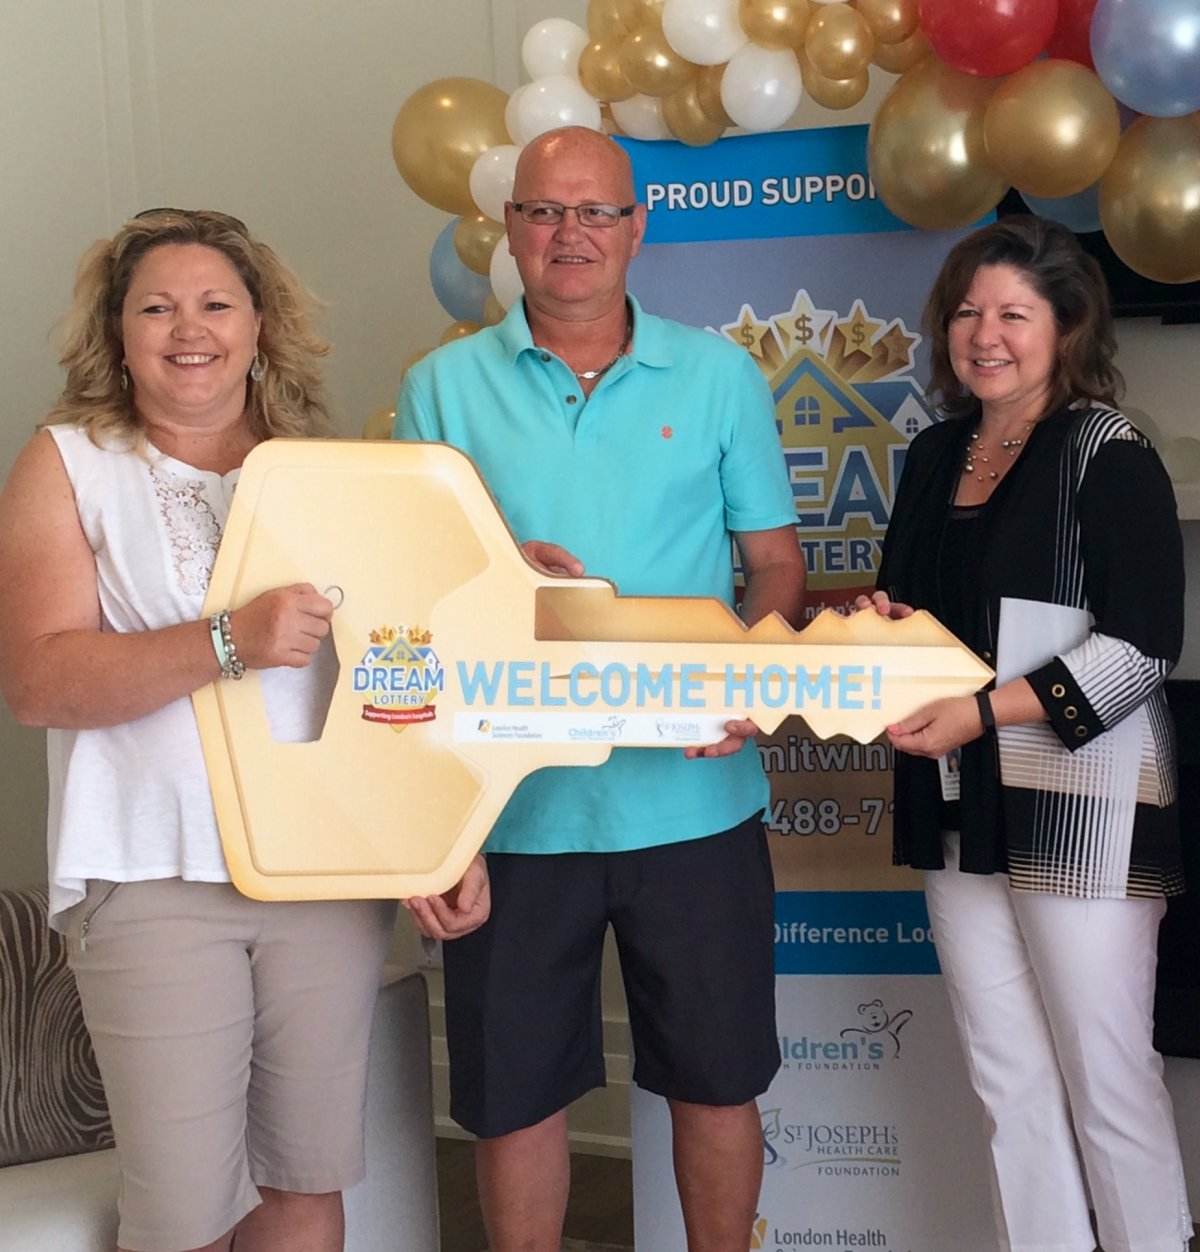 From left to right: Denise Neal and Dermot Brennan, the winners of the spring edition of the Dream Lottery, and Michelle Campbell, the President and CEO of St. Joseph's Health Care Foundation.